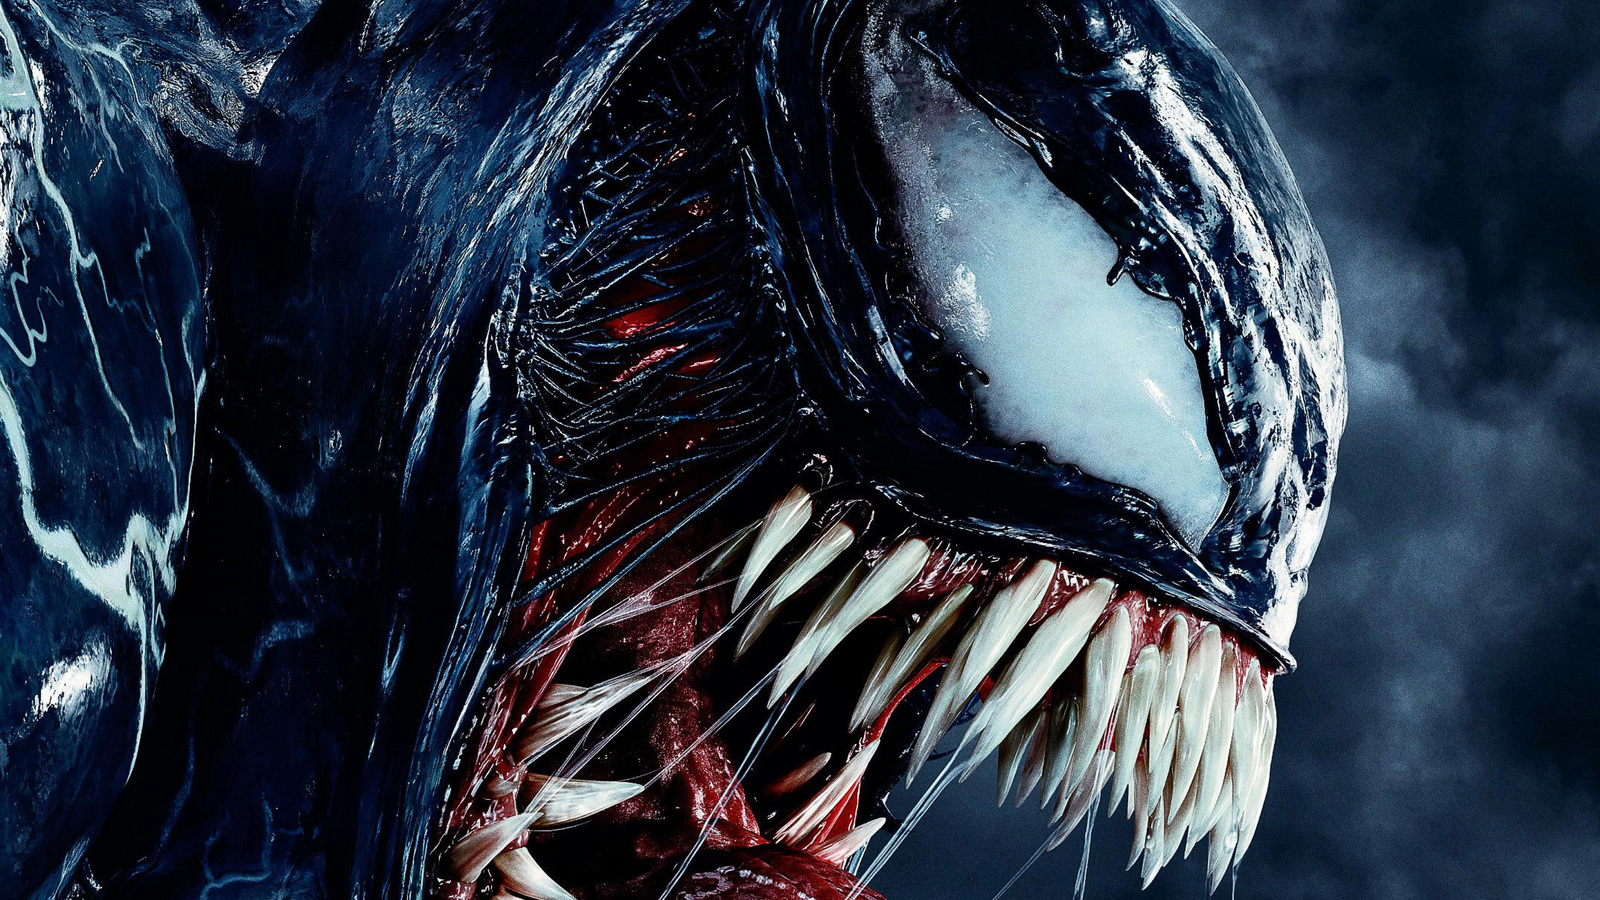 1600x900 venom movie japanese poster 1600x900 resolution hd 4k wallpapers images backgrounds - Wallpapers 1600x900 ...